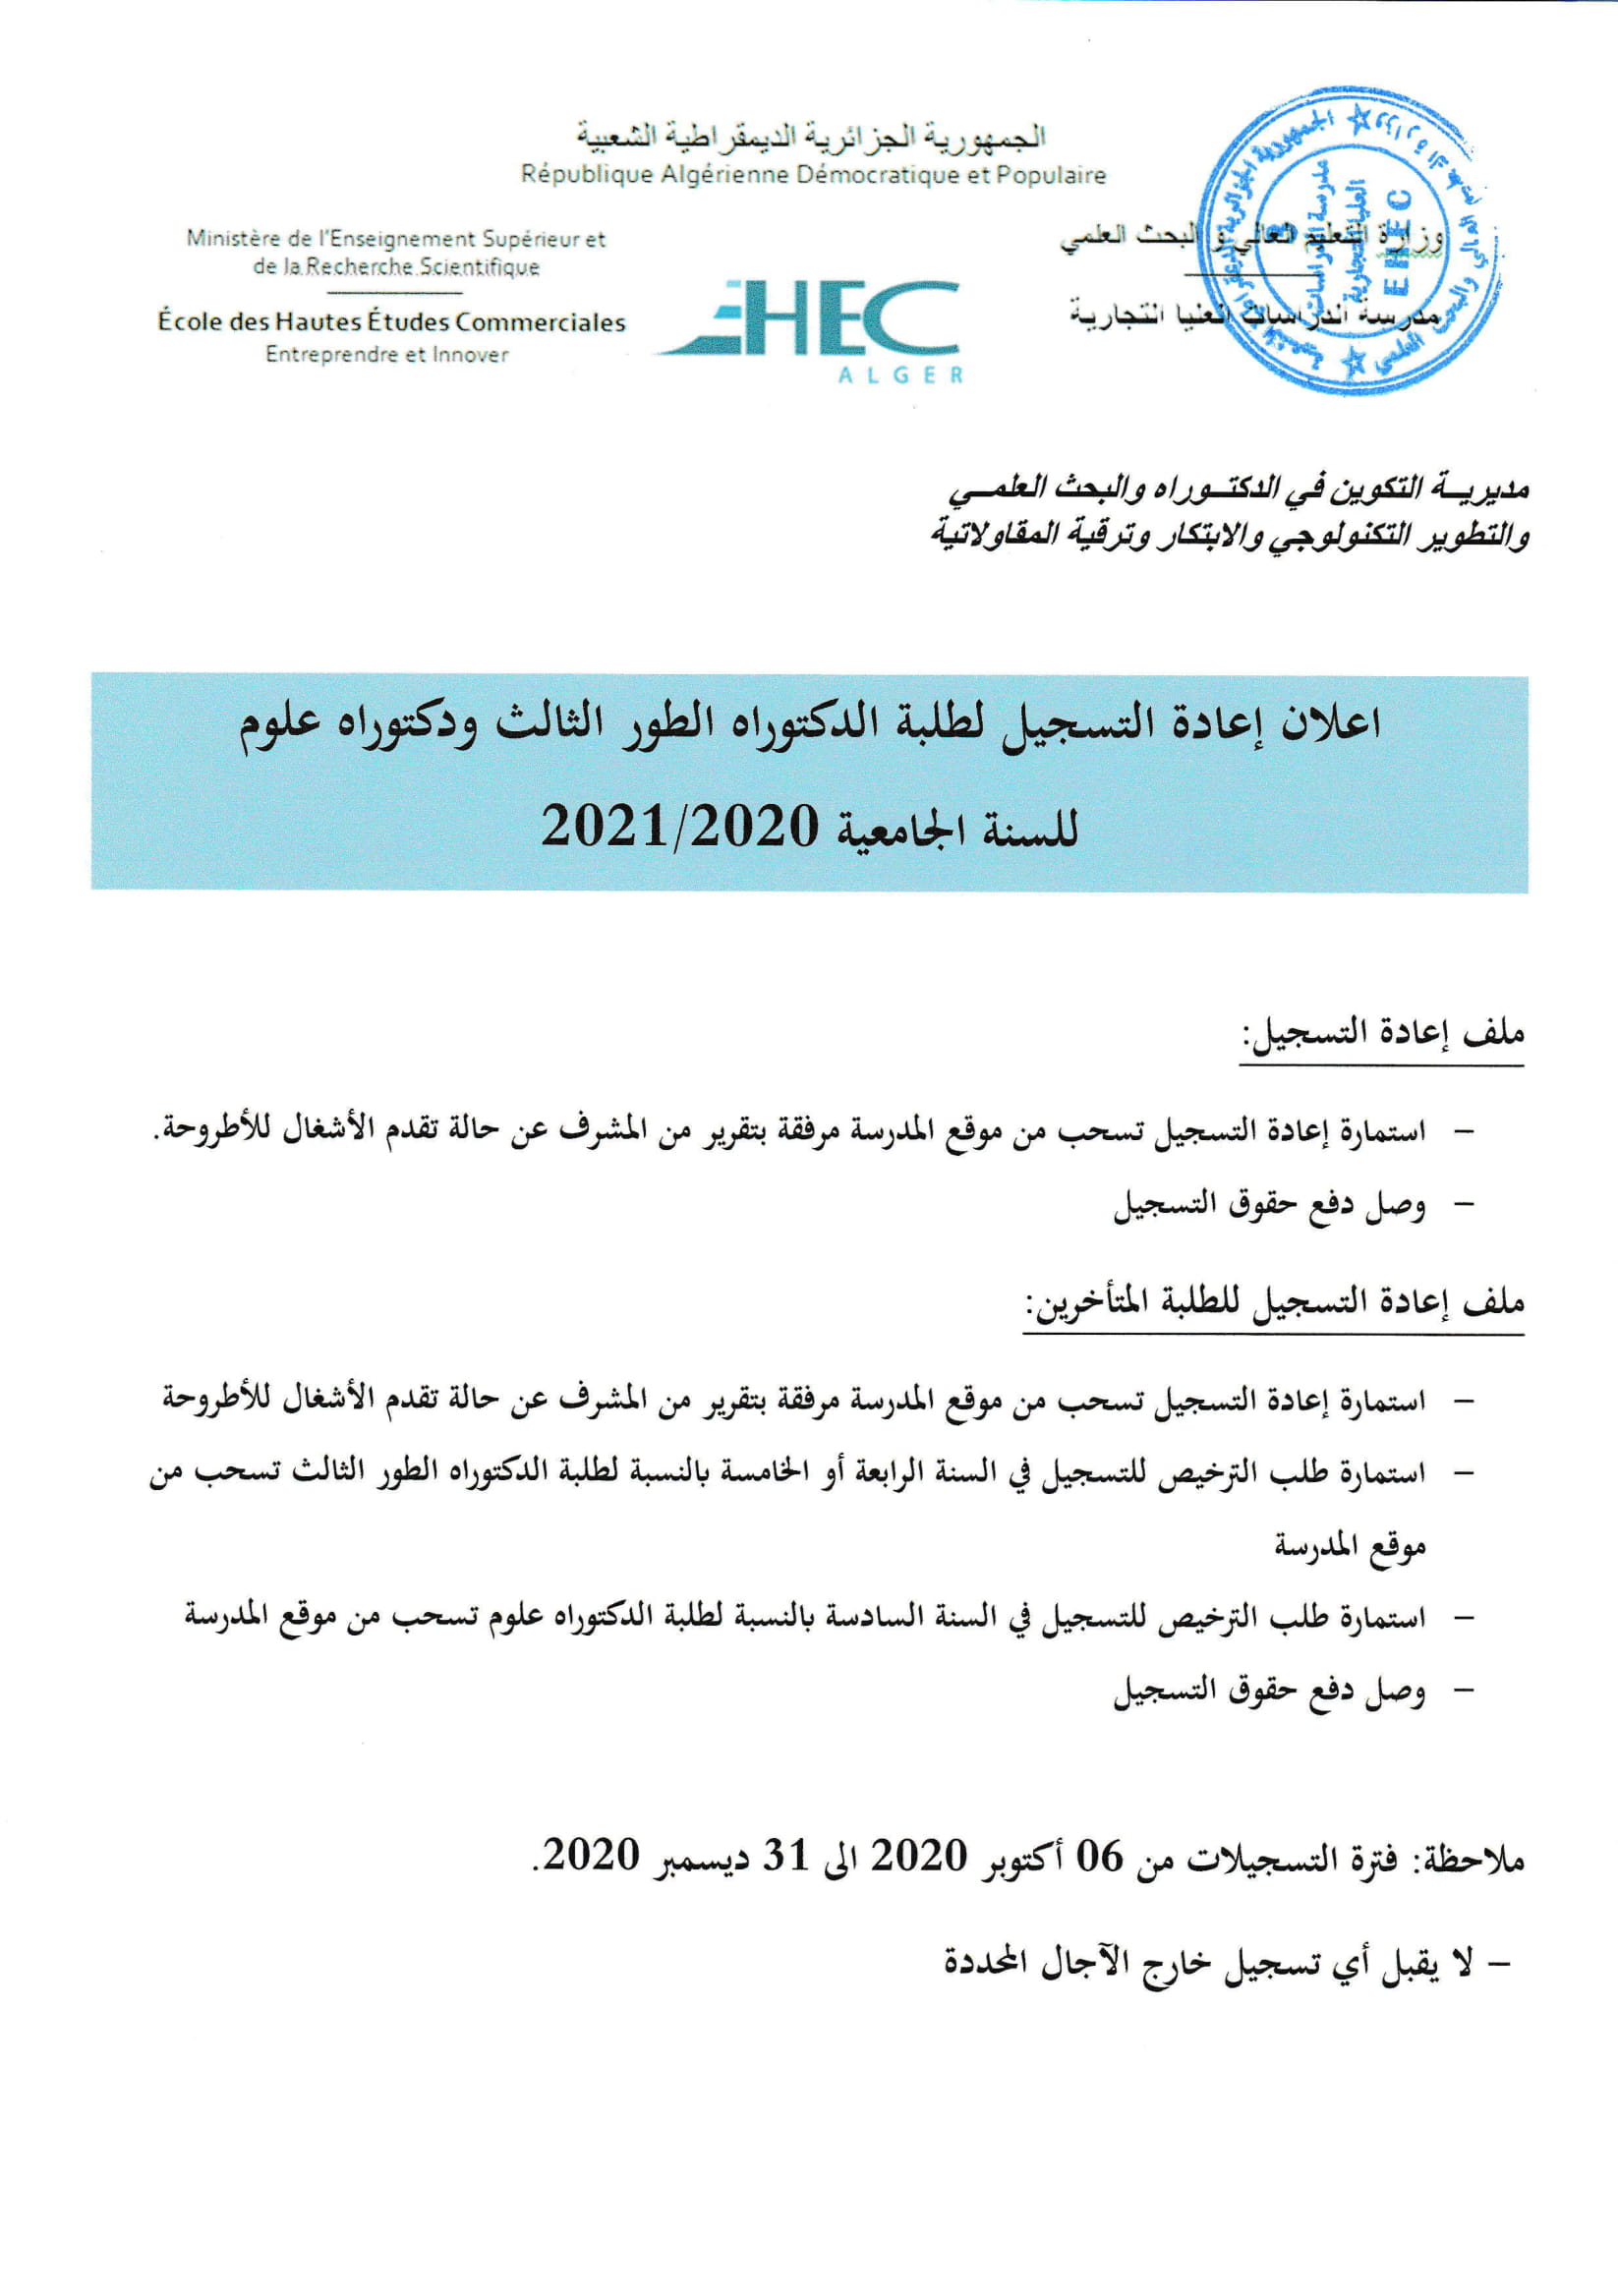 Announcement of re-registration for the PhD